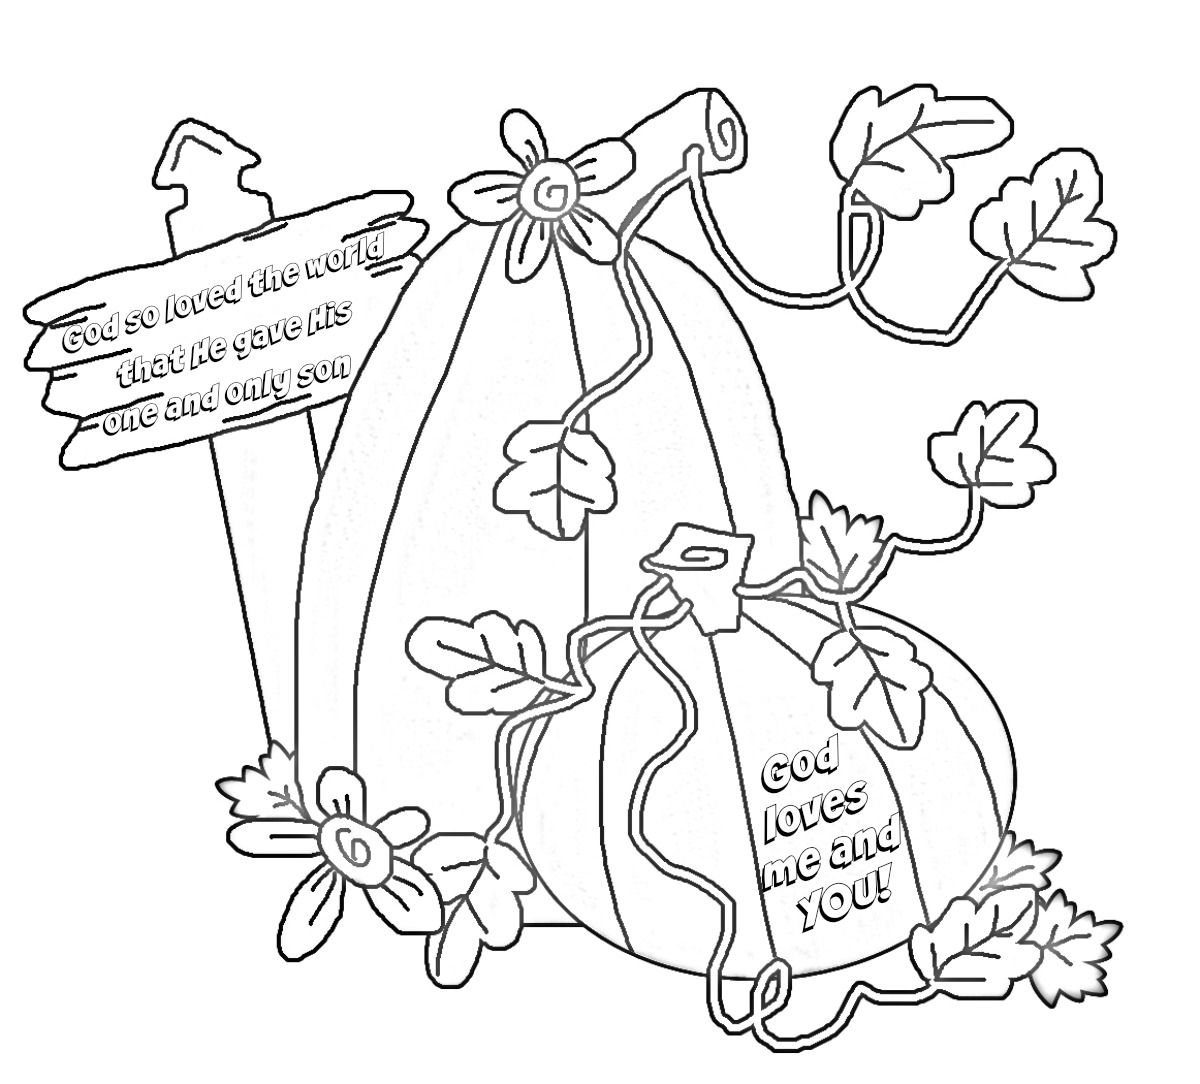 Christian Words Of Encouragement Devotions For Seniors Christian Coloring Pages For Adults And